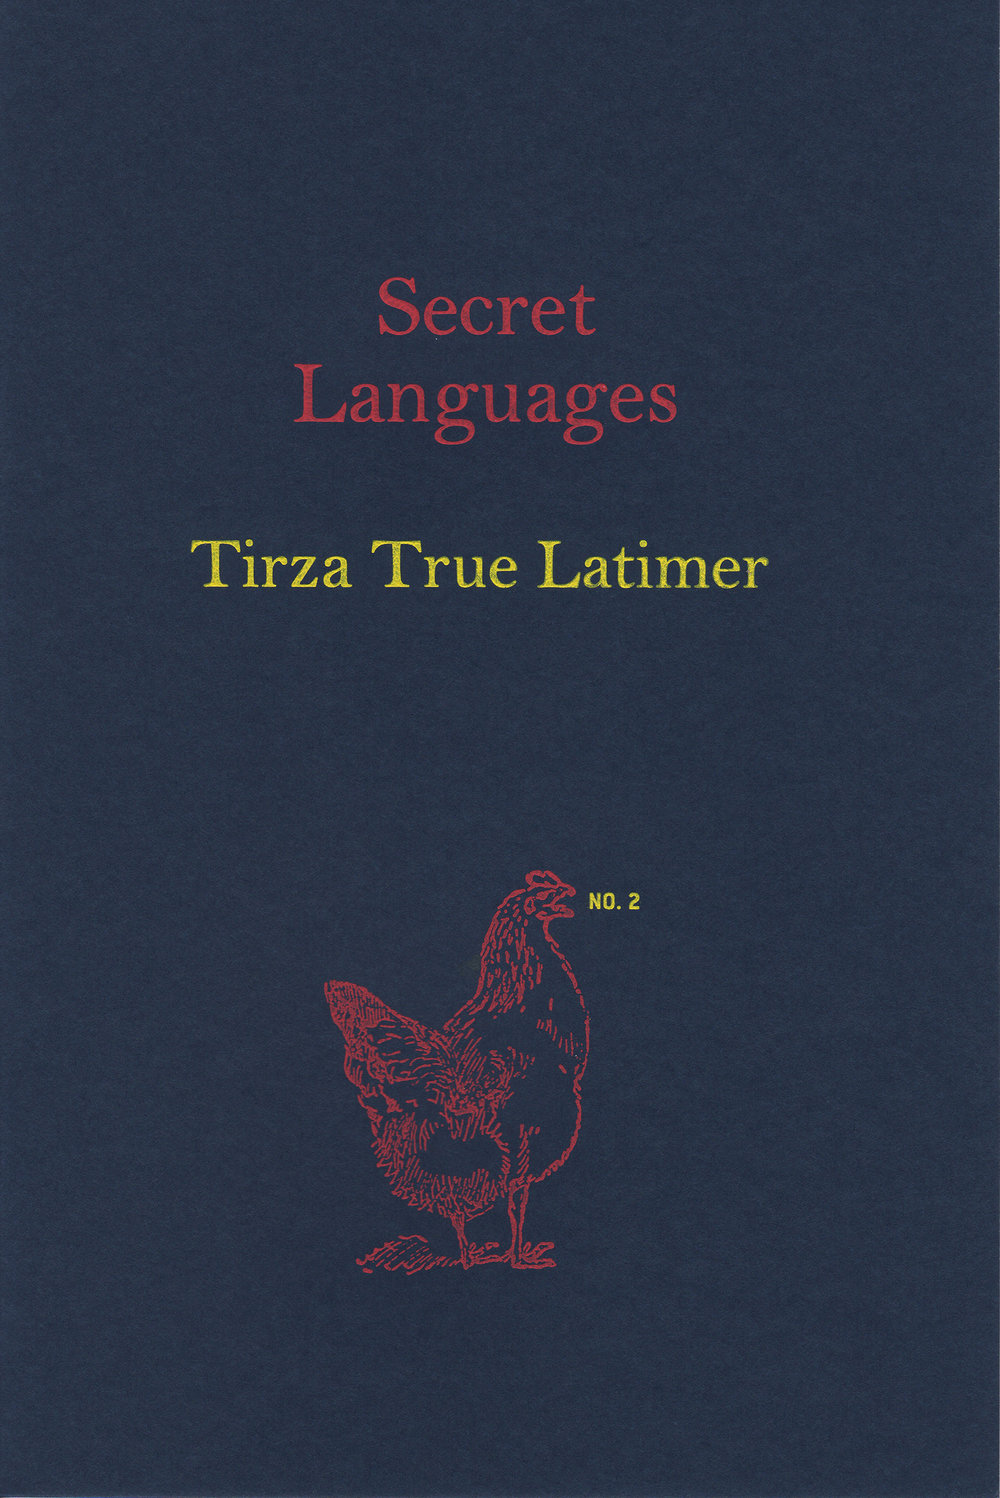 Secret Languages  by Tirza True Latimer, 2012 Offset lithography, engraved cover, 6.75 x 4.5 inches, 20 pages. Edition of 300 Designed by Susan Silton $35